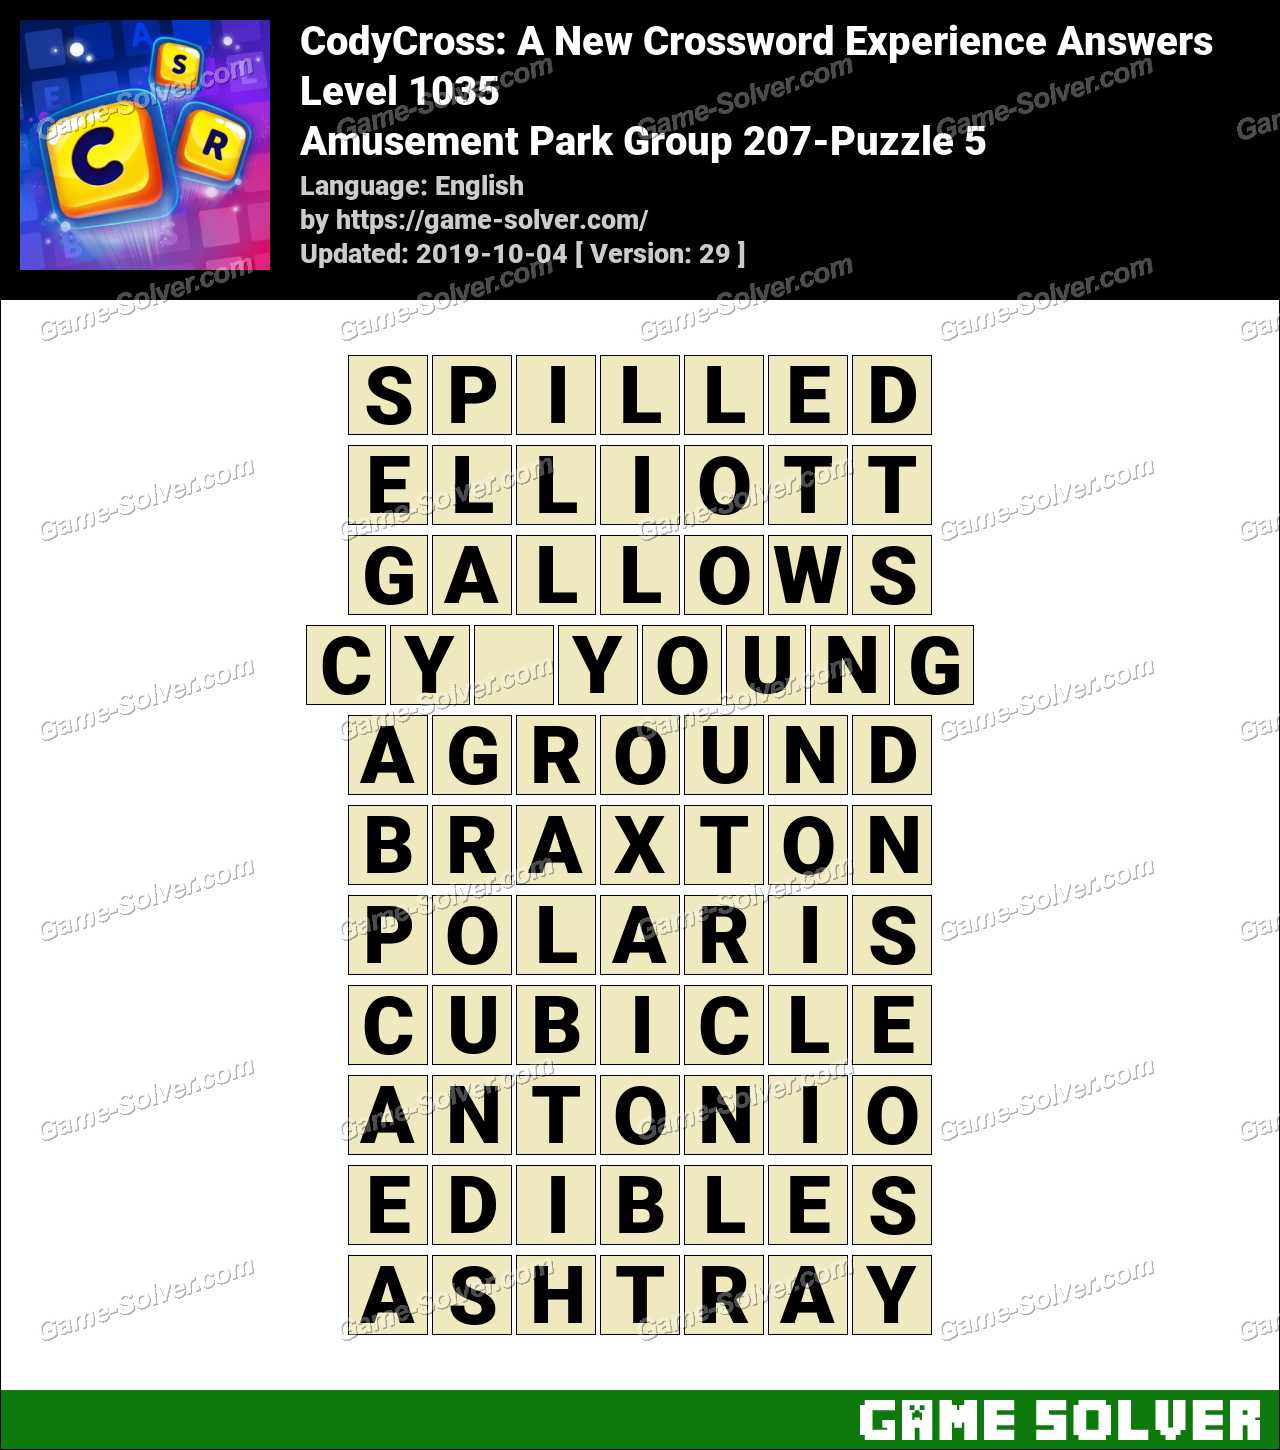 CodyCross Amusement Park Group 207-Puzzle 5 Answers